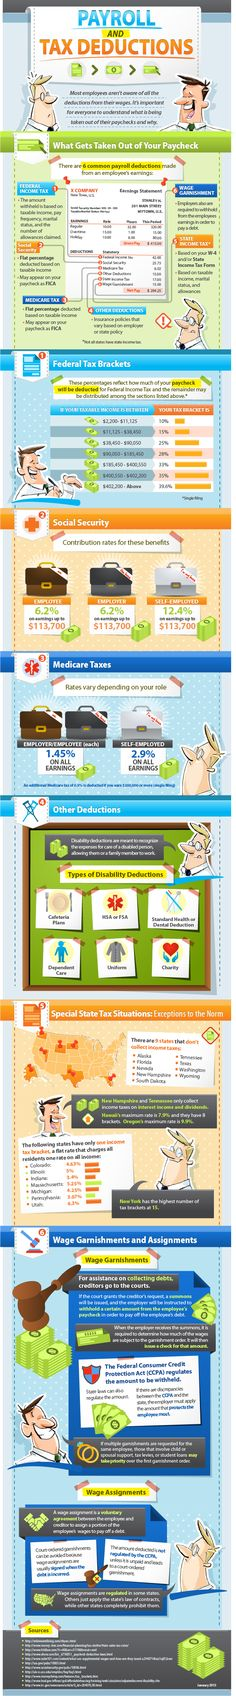 Payroll and Tax Deductions - Blog About Infographics and Data Visualization - Cool Infographics